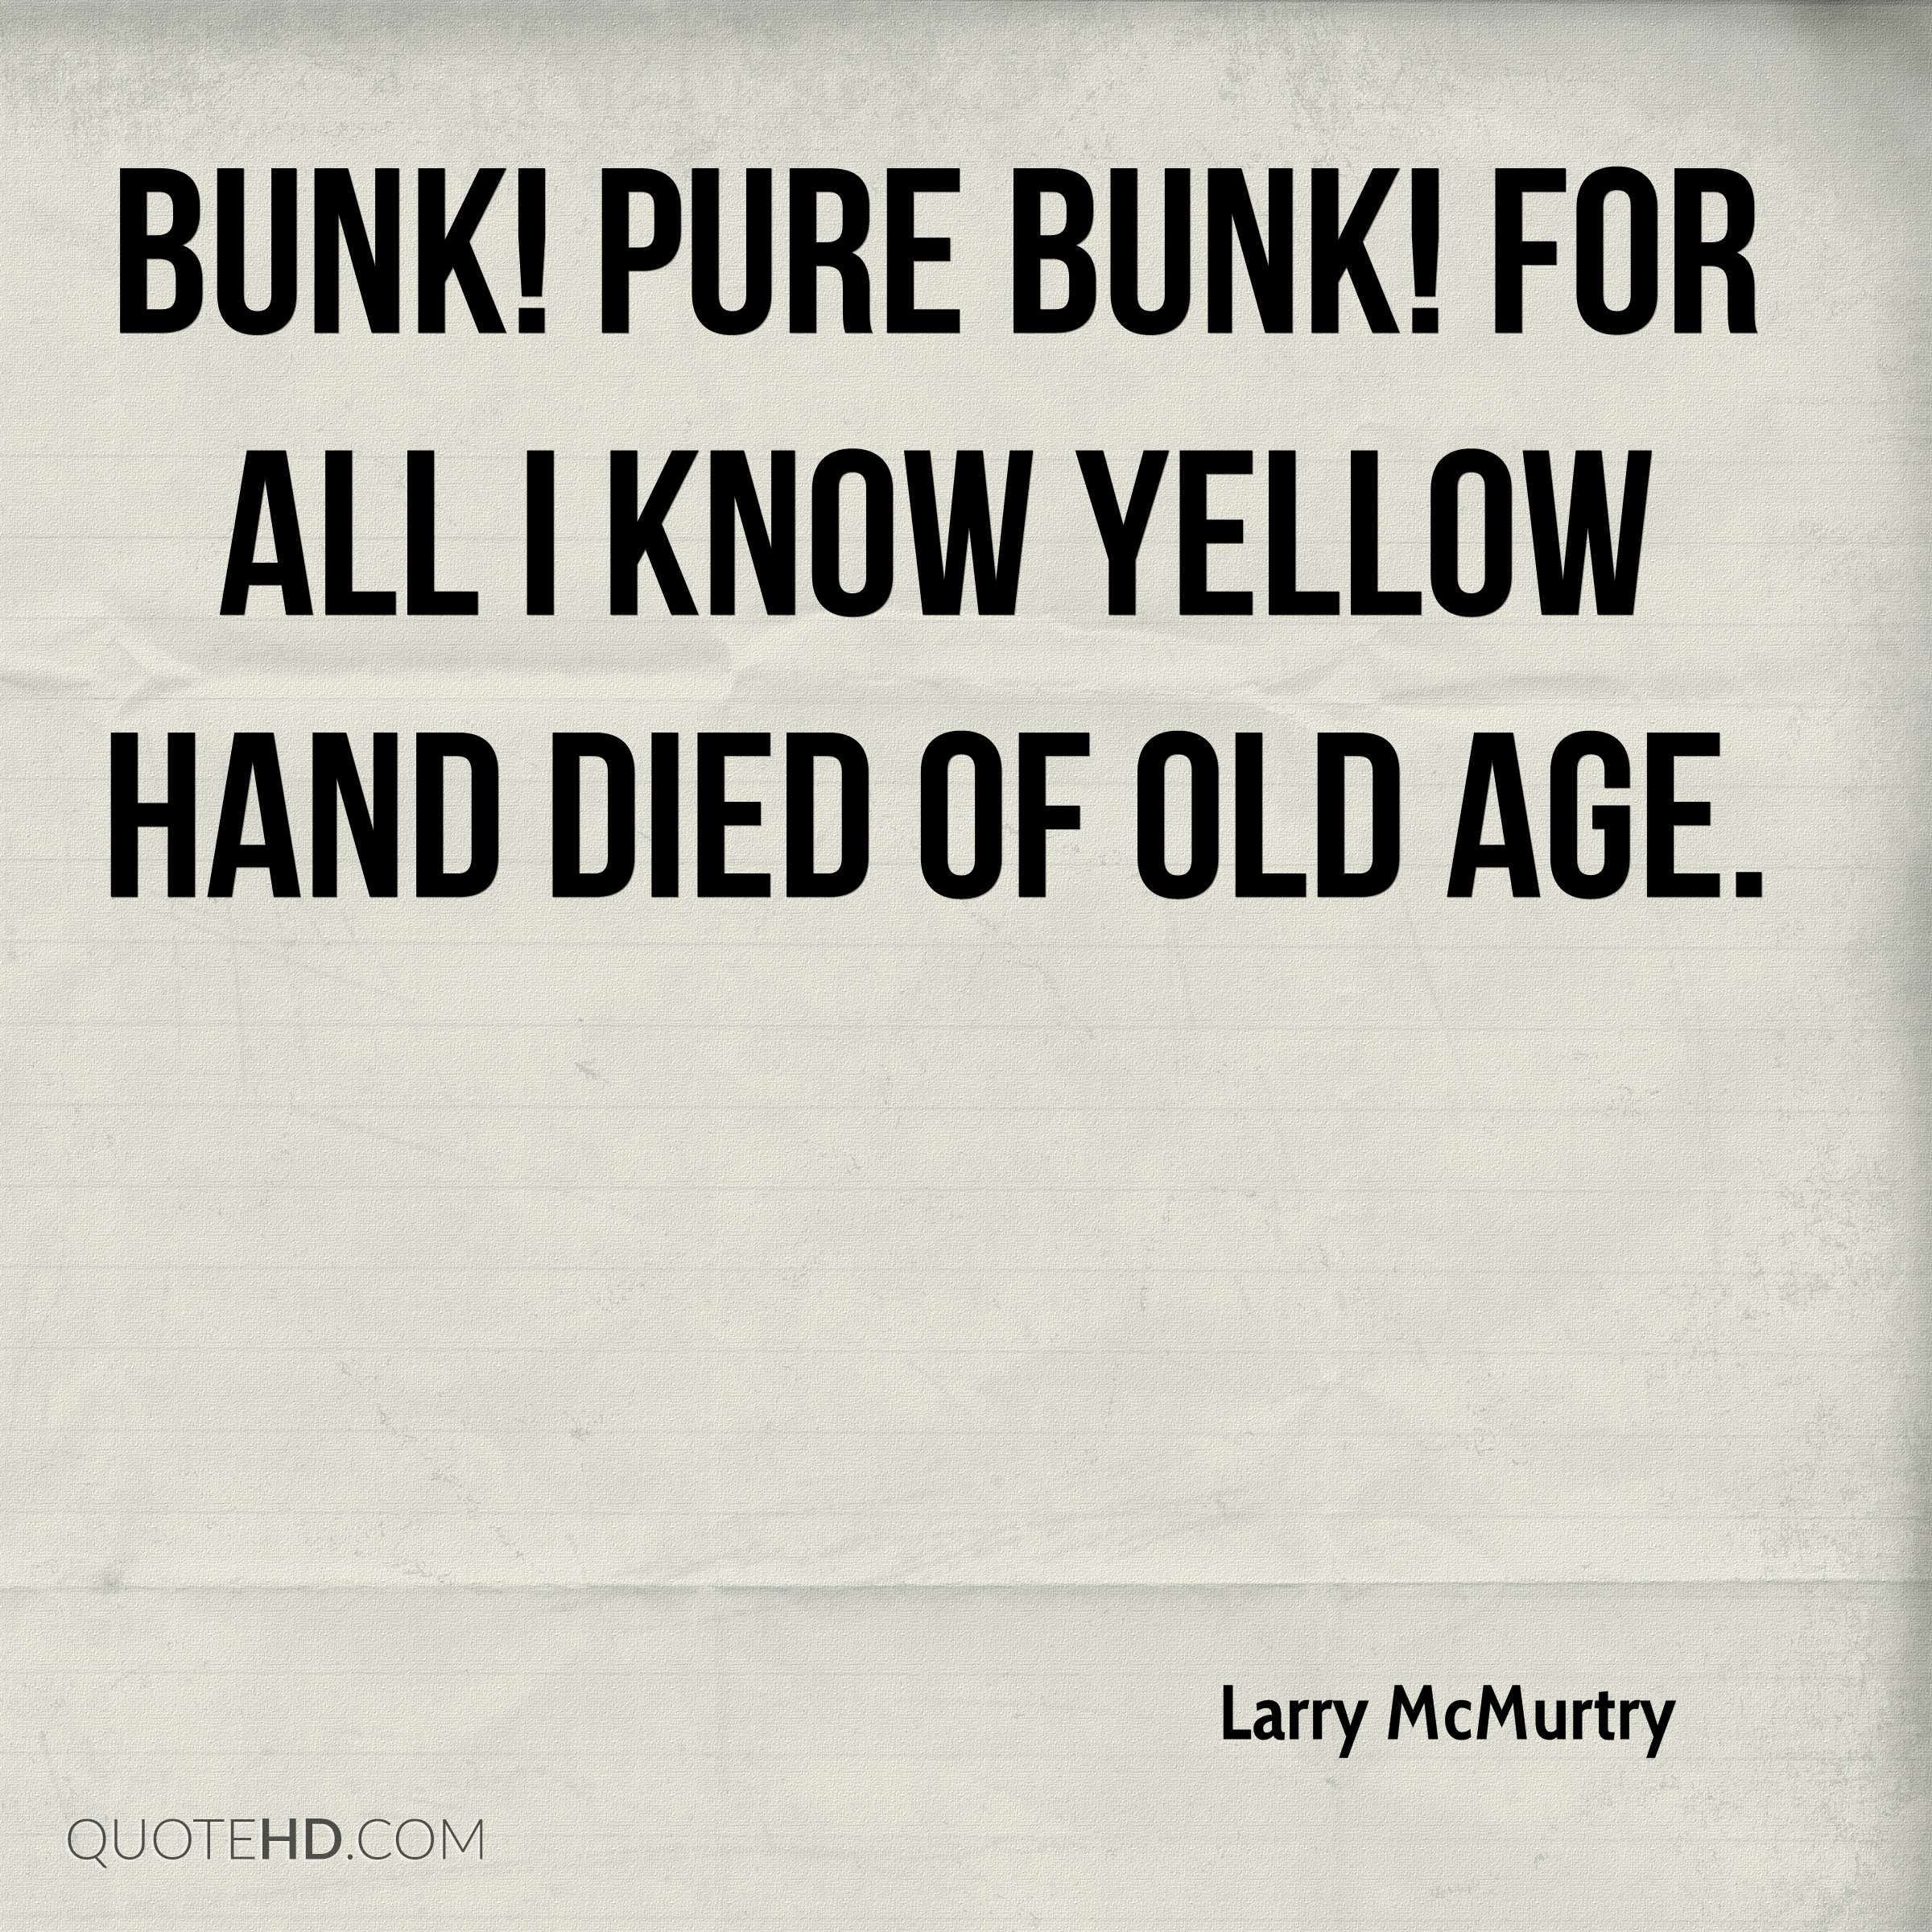 Bunk! Pure bunk! For all I know Yellow Hand died of old age.